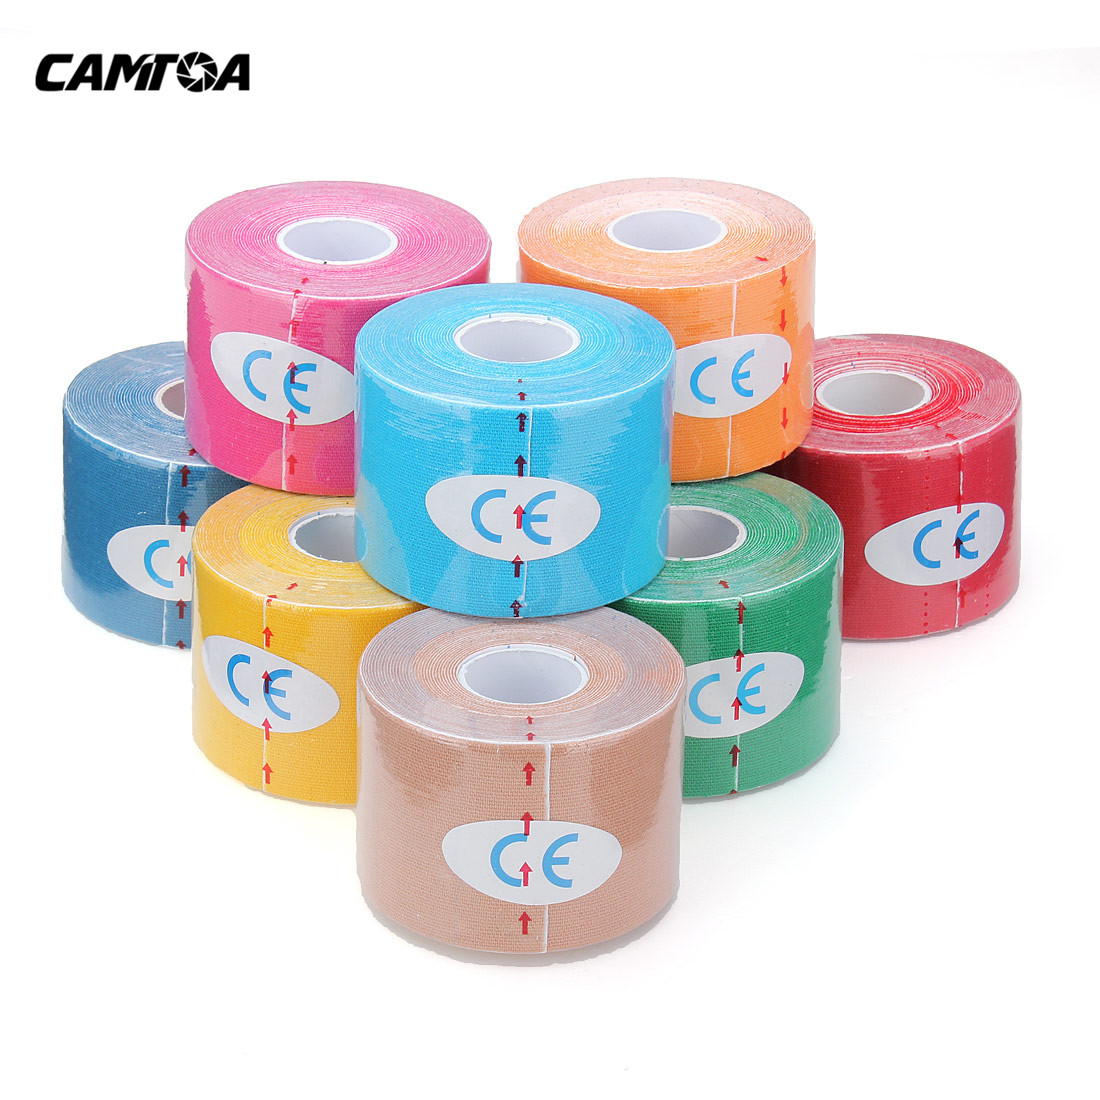 5M*5CM Waterproof Breathable Elastic Kinesiology Muscles tape sport Fitness Strain Injury Guard Muscles Care Adhesive Tape Strap